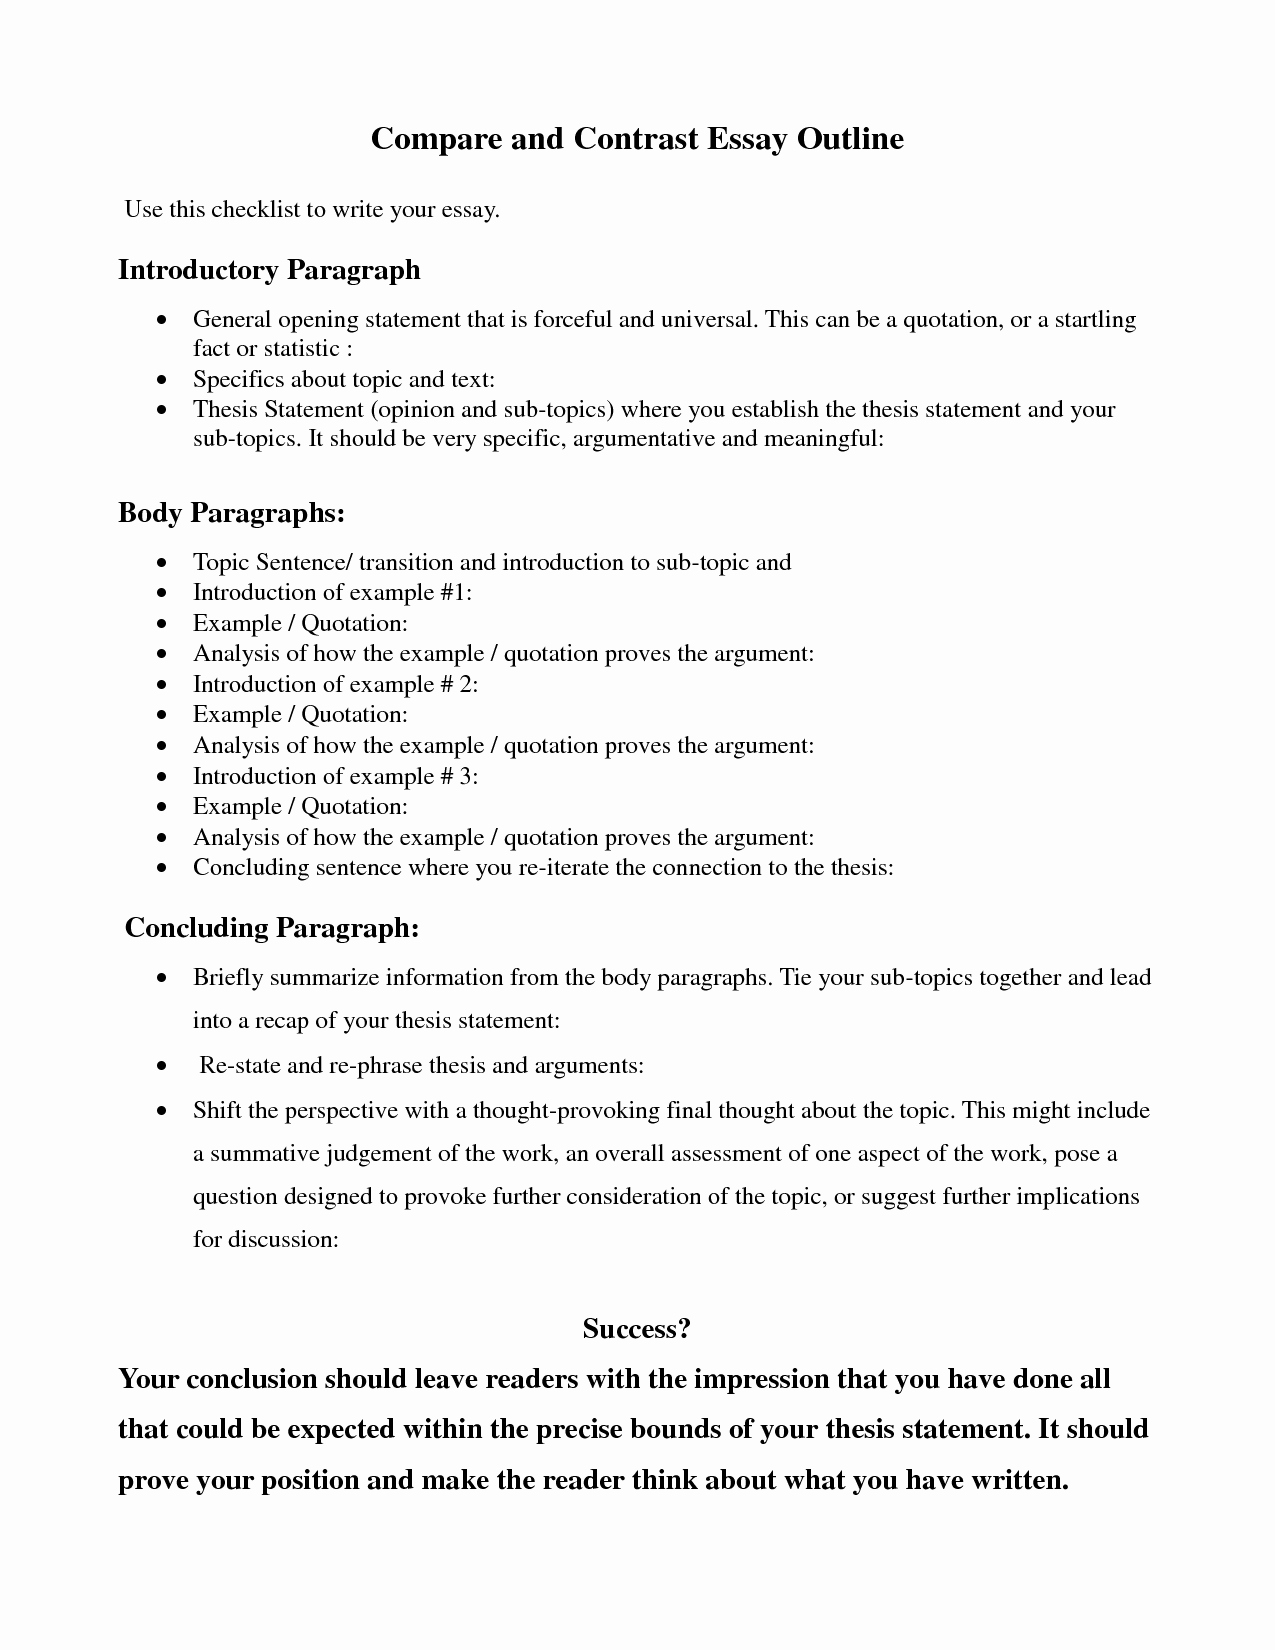 Art Institute Essay Prompt Elegant Pare Contrast Essay Outline Google Search